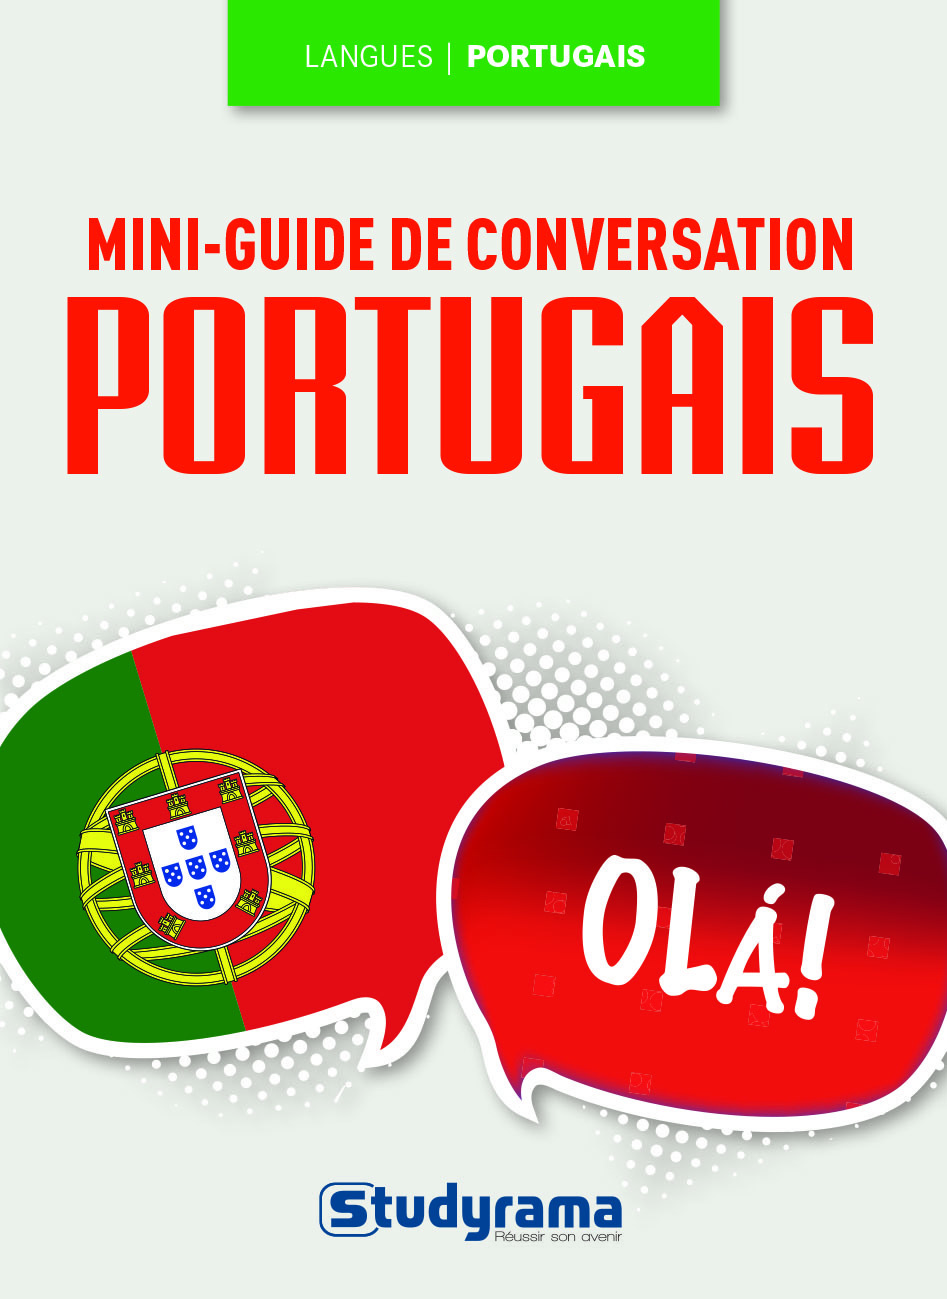 MINI GUIDE DE CONVERSATION EN PORTUGAIS